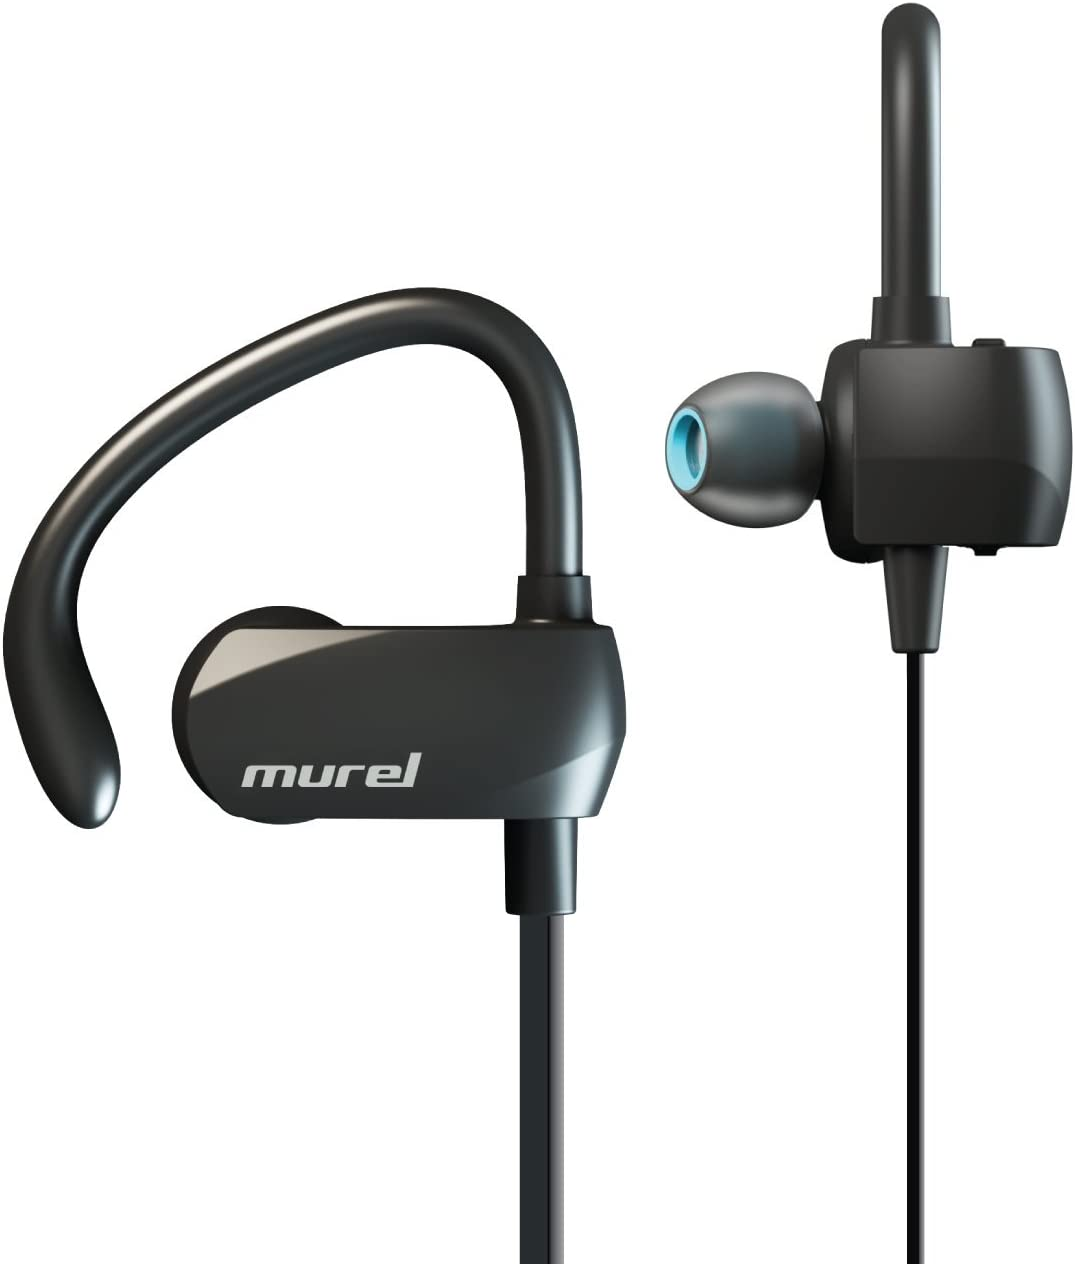 Murel Best Bluetooth Earbuds Wireless Sport 8 Hour Play Time in-Ear Exercise Running Sweat Proof Bluetooth 4.1, Secure Ear Hooks Design with Premium Comply Foam Ear Tips P02 New